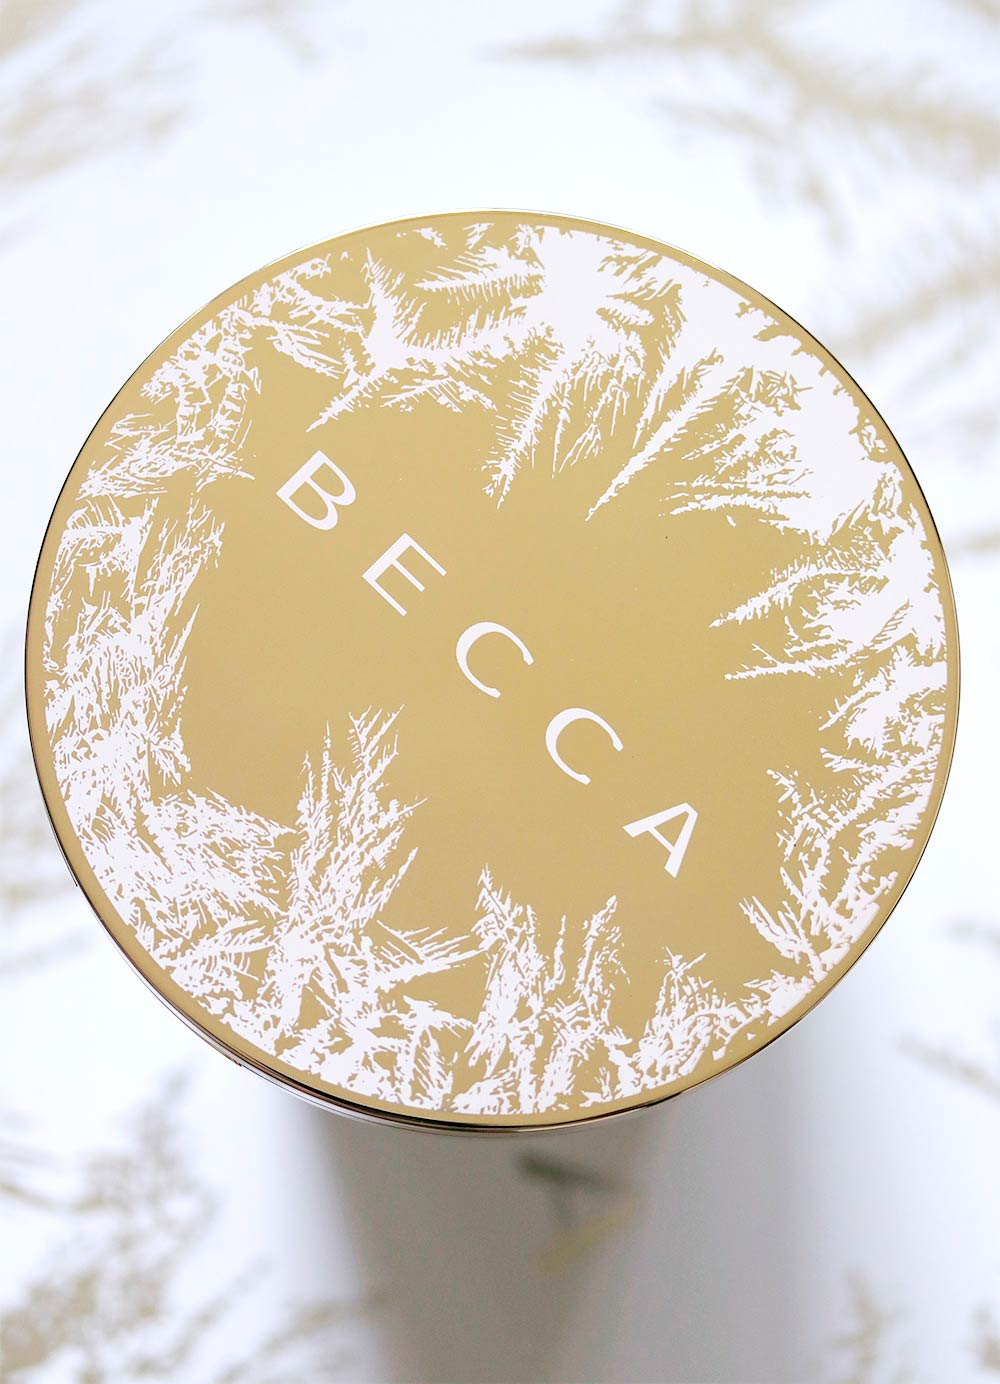 becca eye lights palette packaging